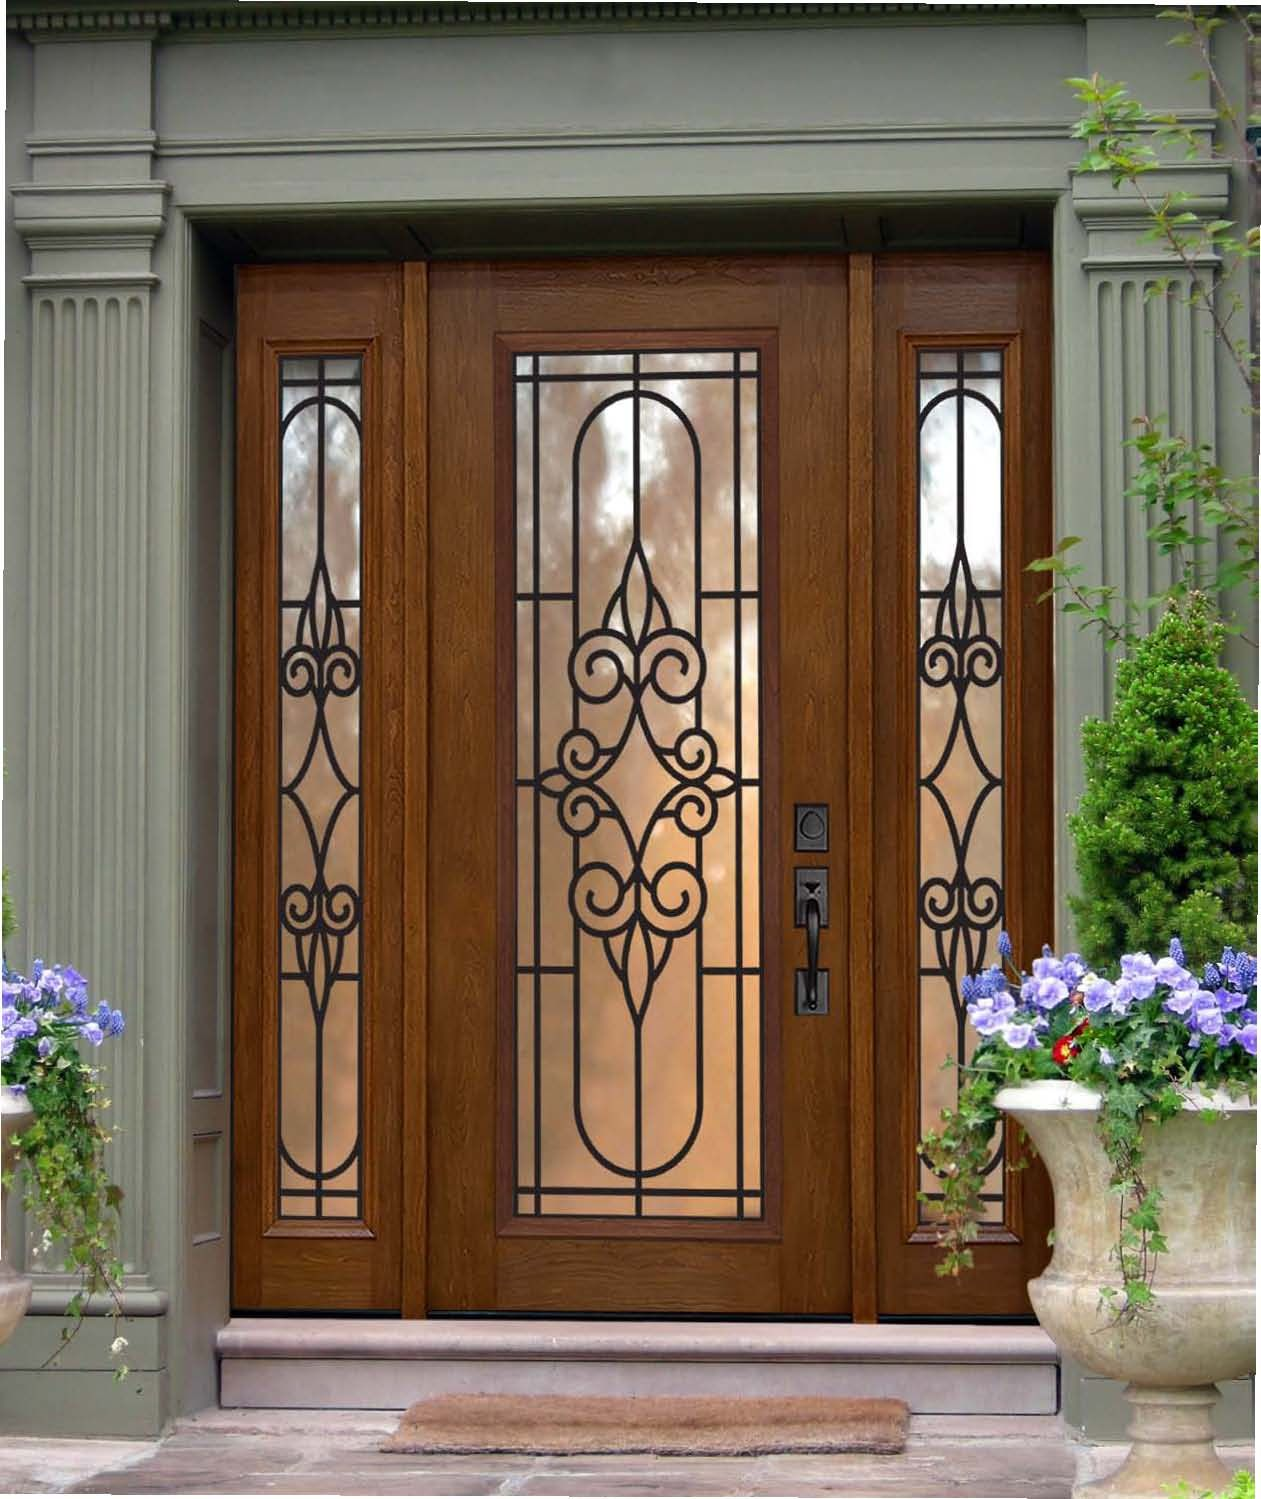 Entry doors sidelights this is what i would love to replace my entry doors sidelights this is what i would love to replace my current generic set with rubansaba